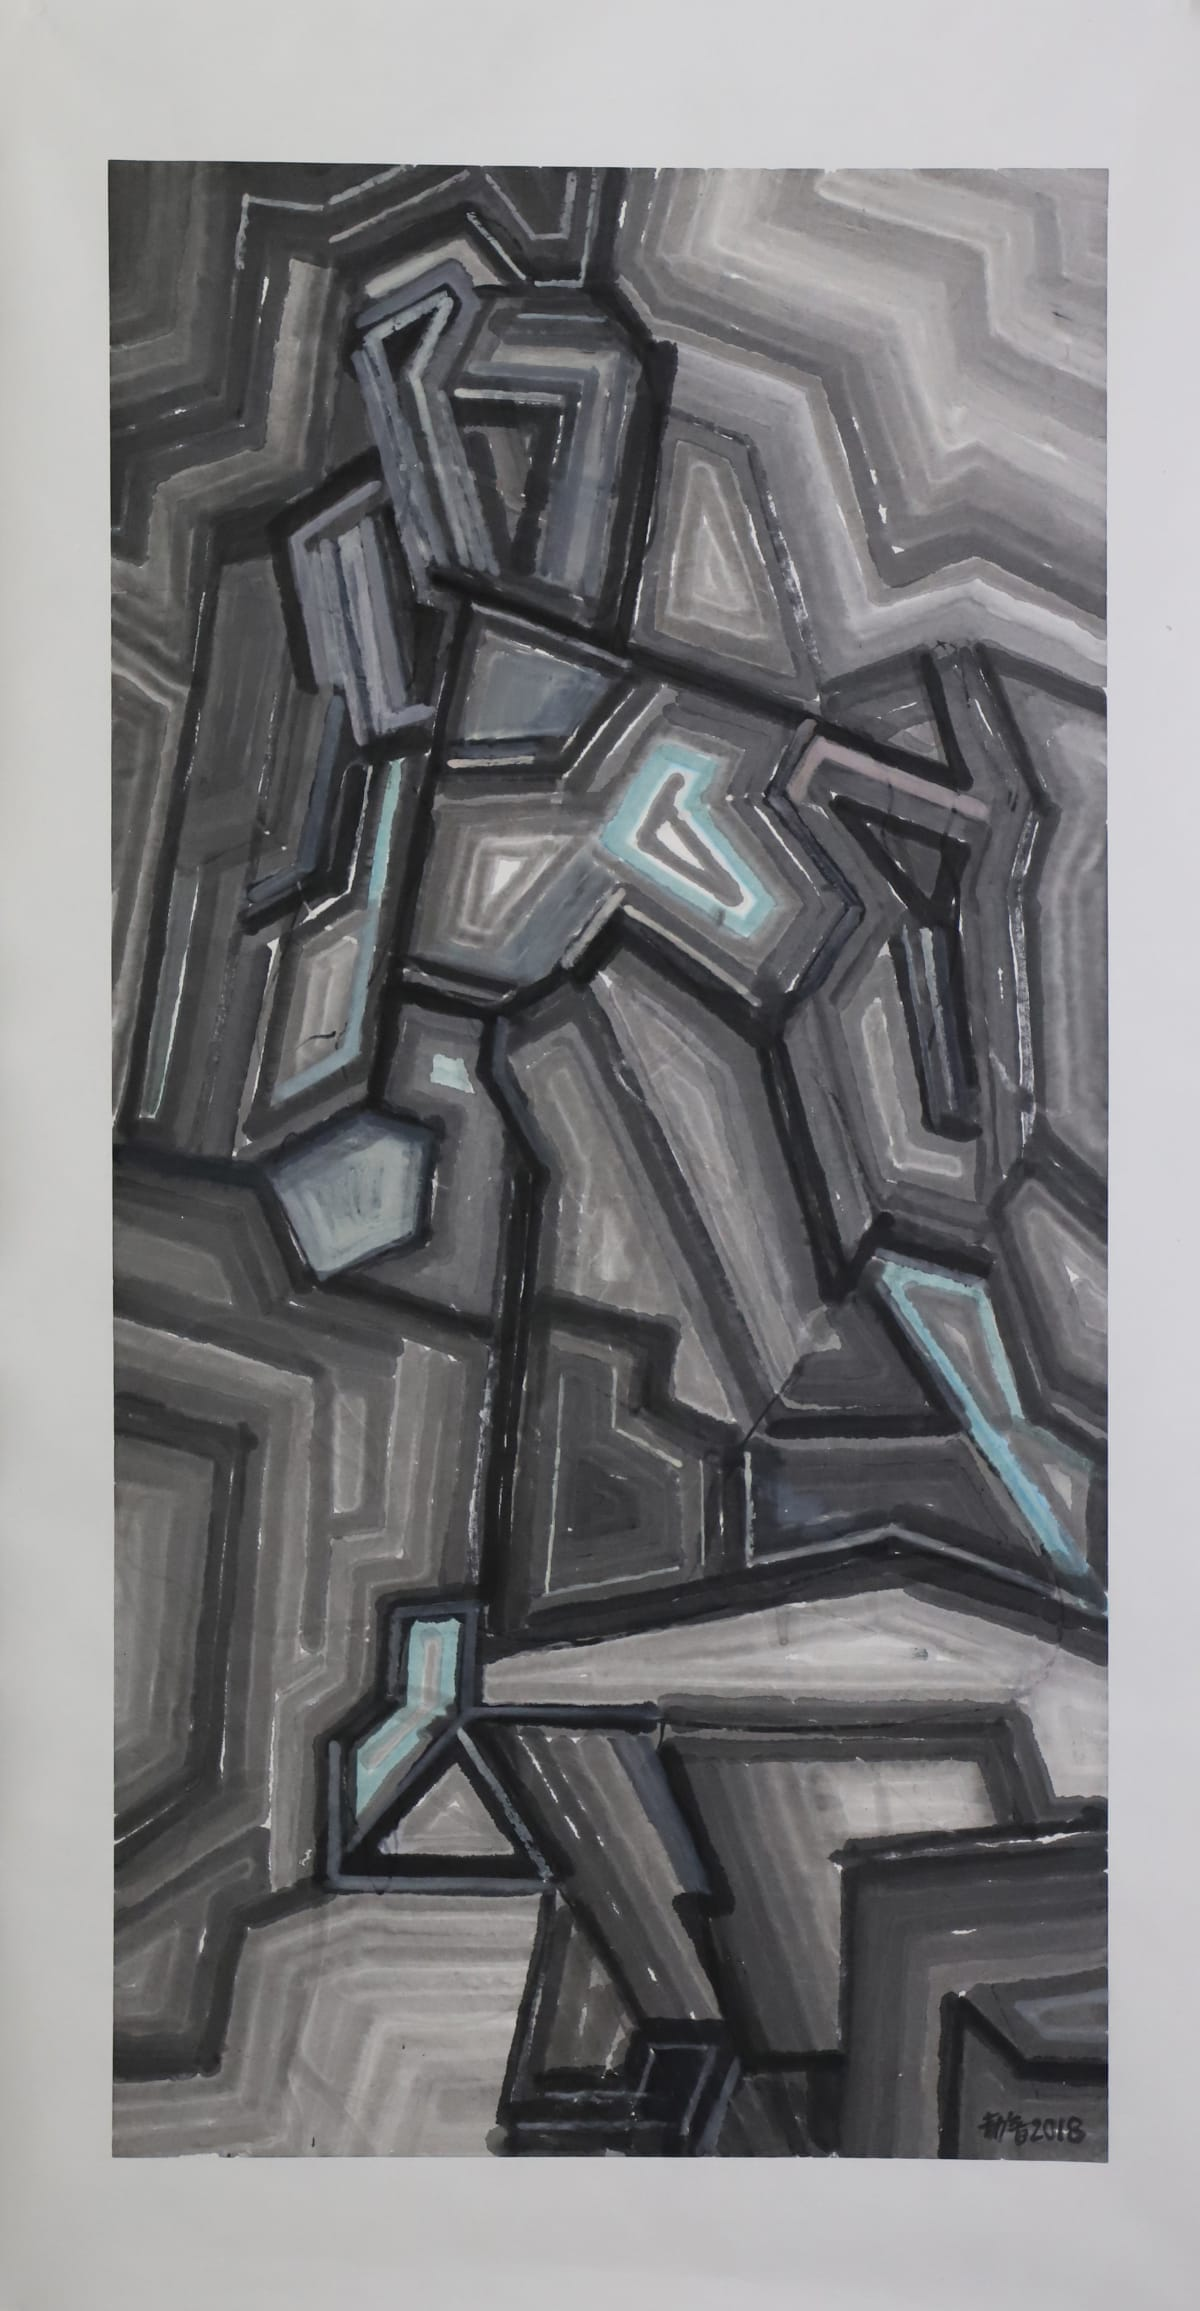 Wang Jieyin 王劼音, Structural Landscape 1 結構山水之一, 2018